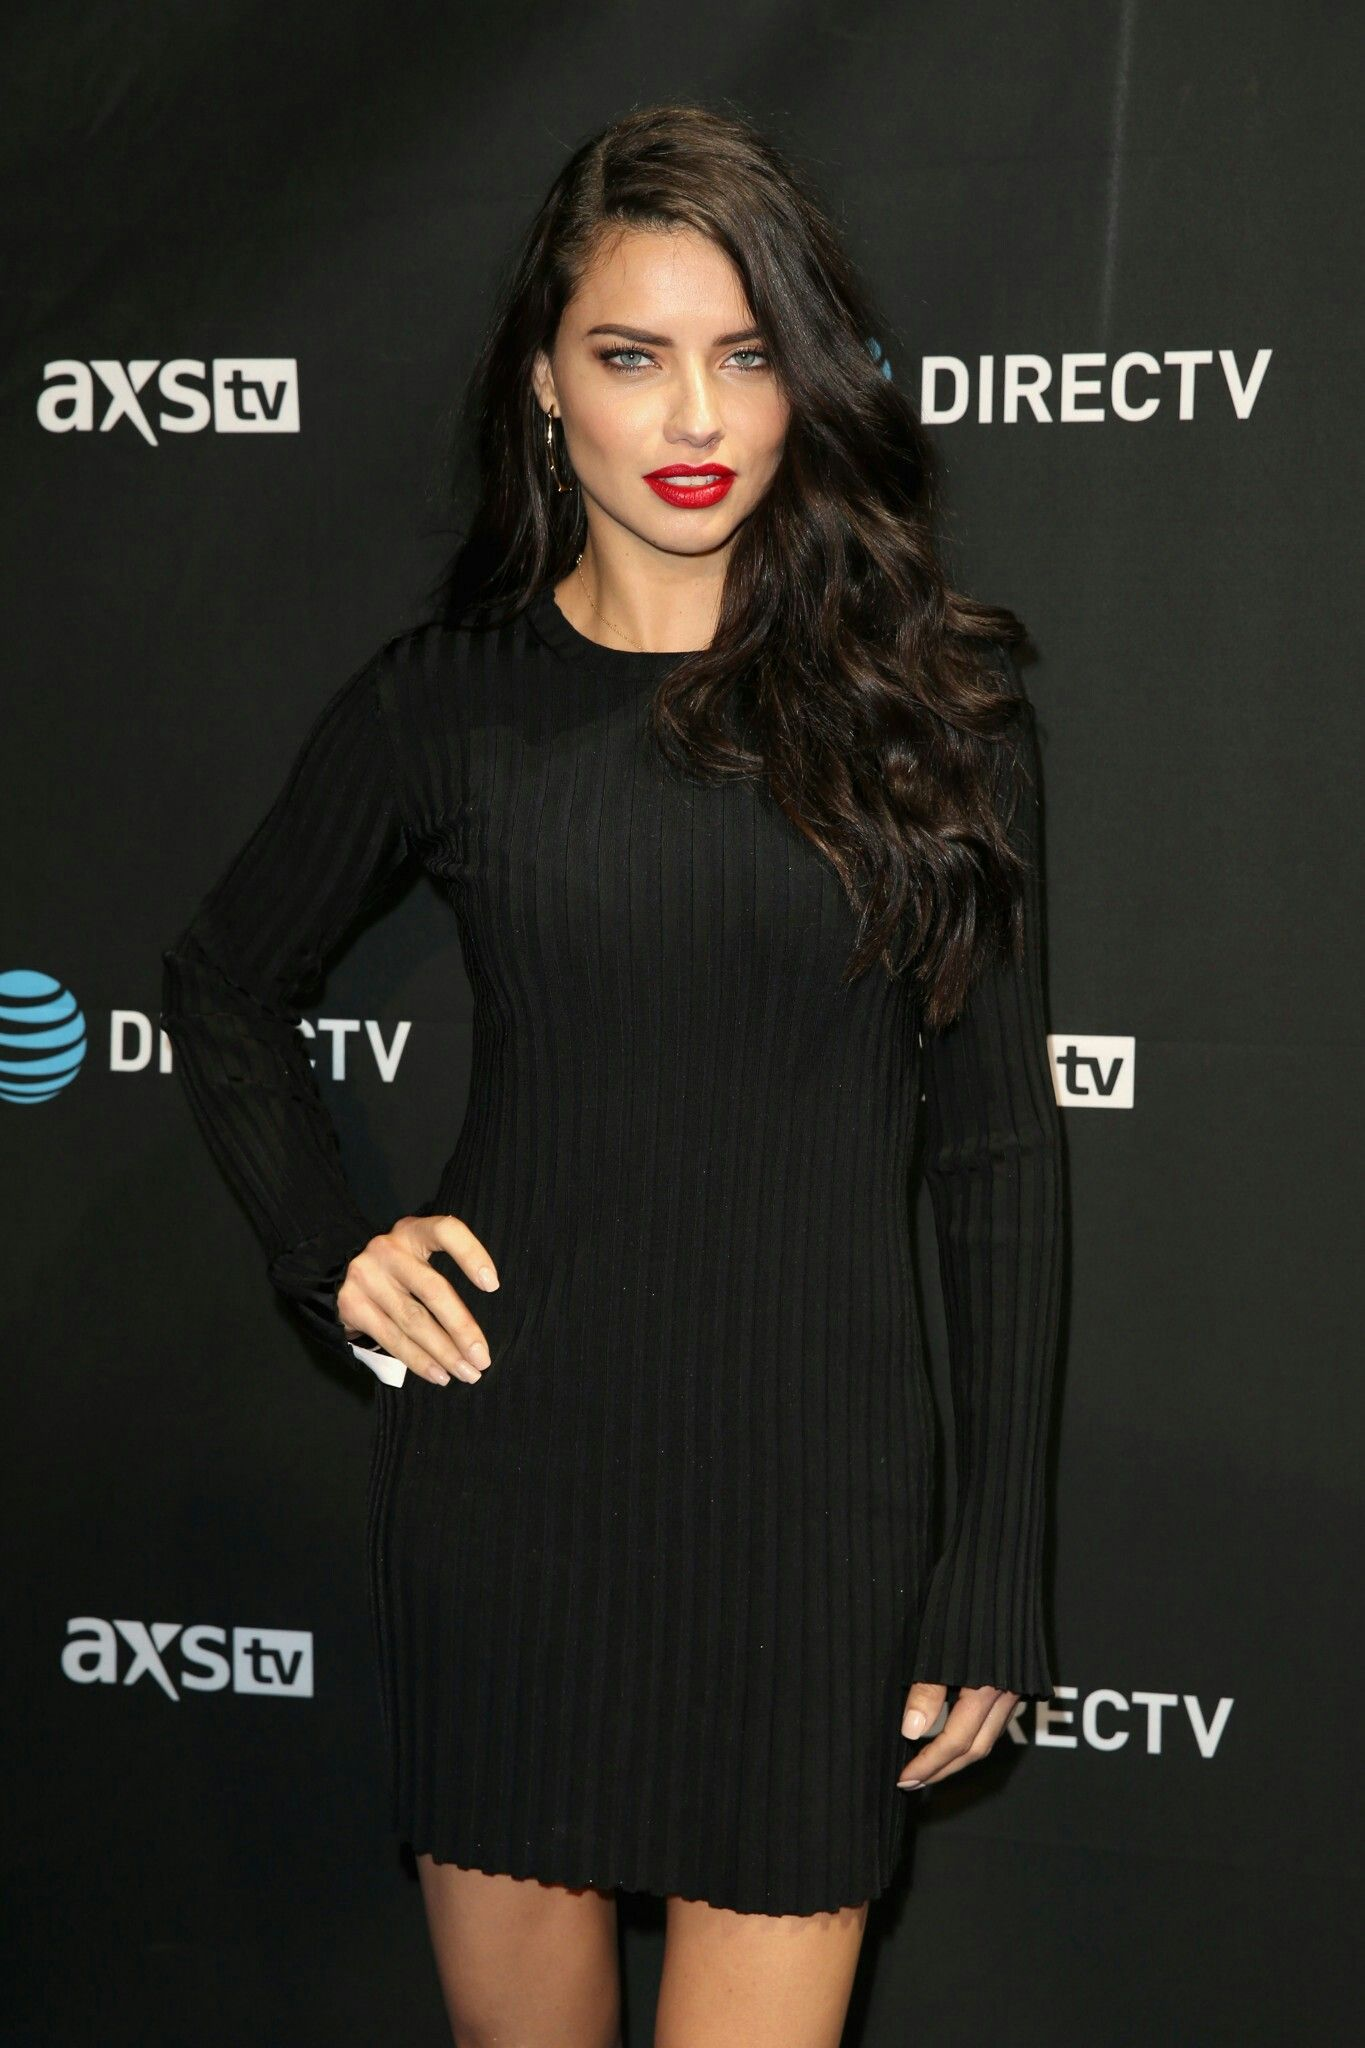 Adriana Lima L Black Dress Red Lips Adriana Lima Style